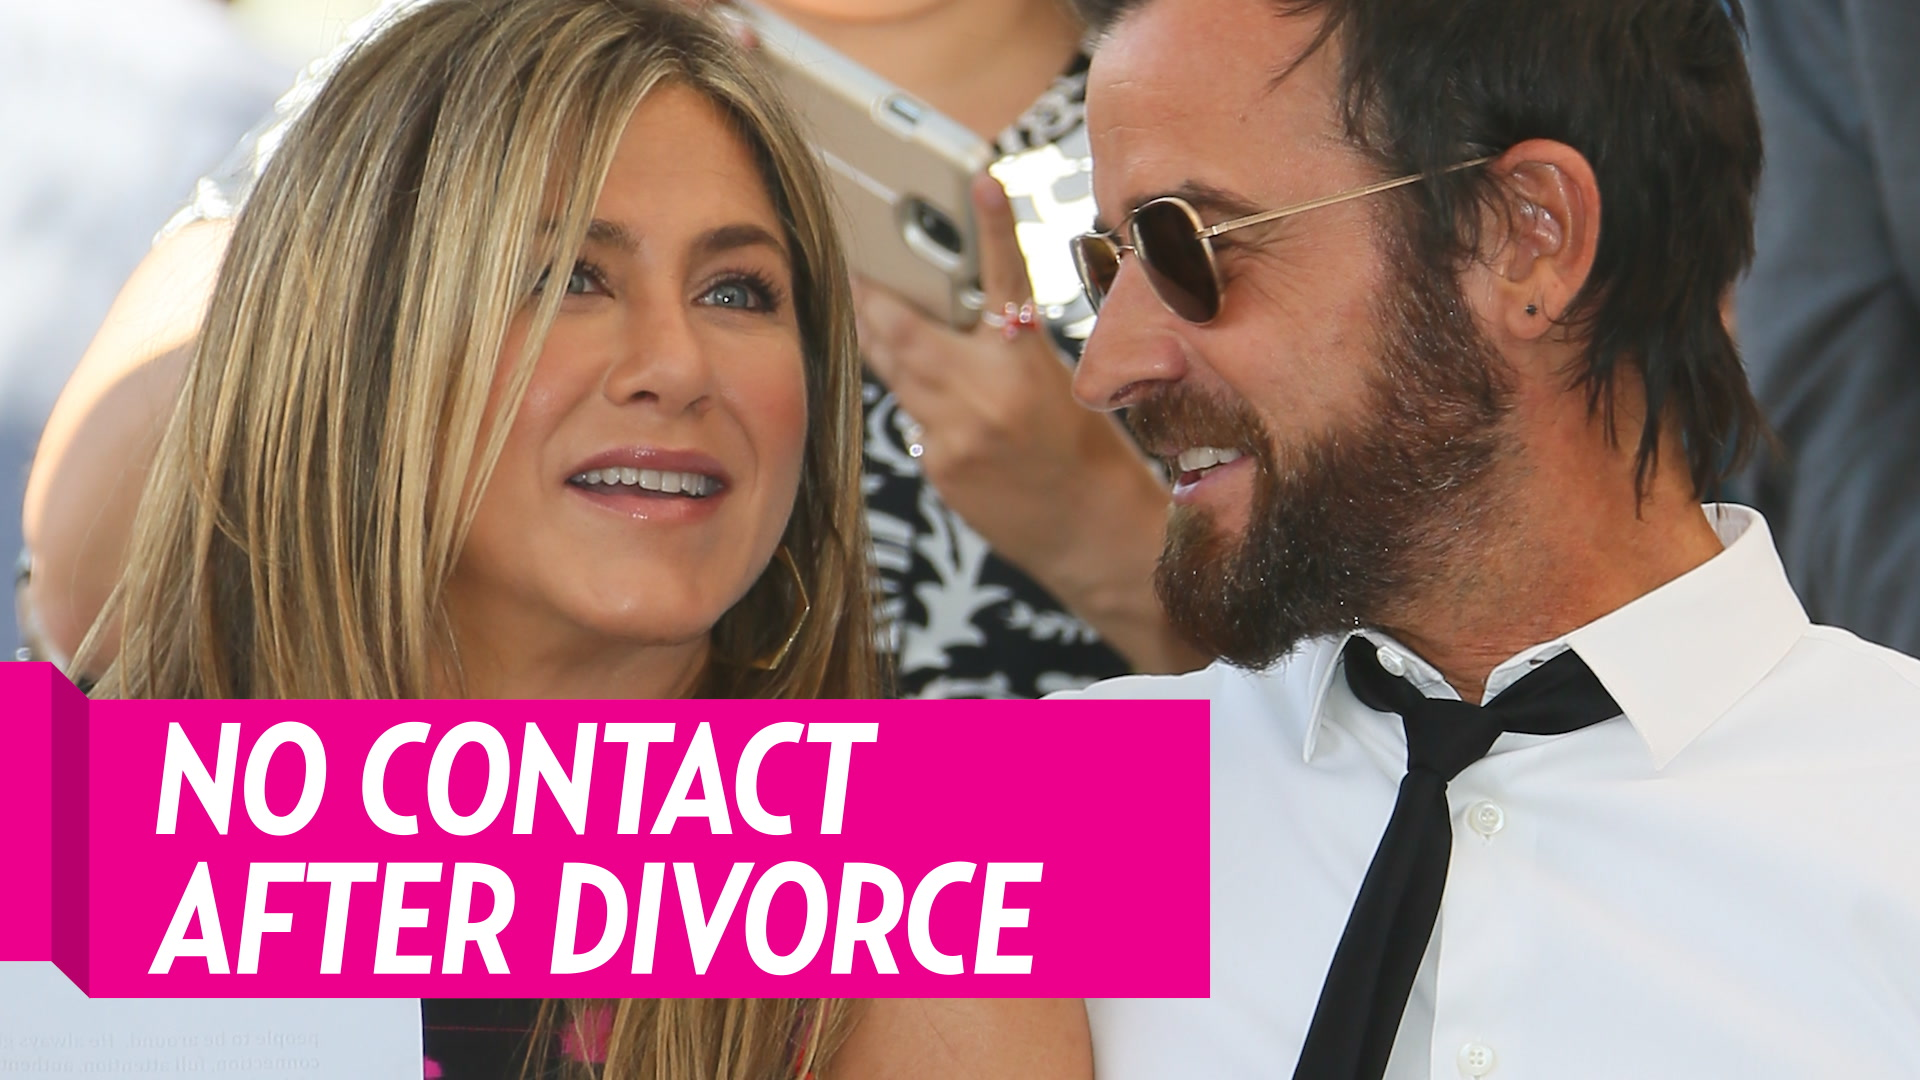 Jennifer Aniston and Justin Theroux Have No Contact After Divorce